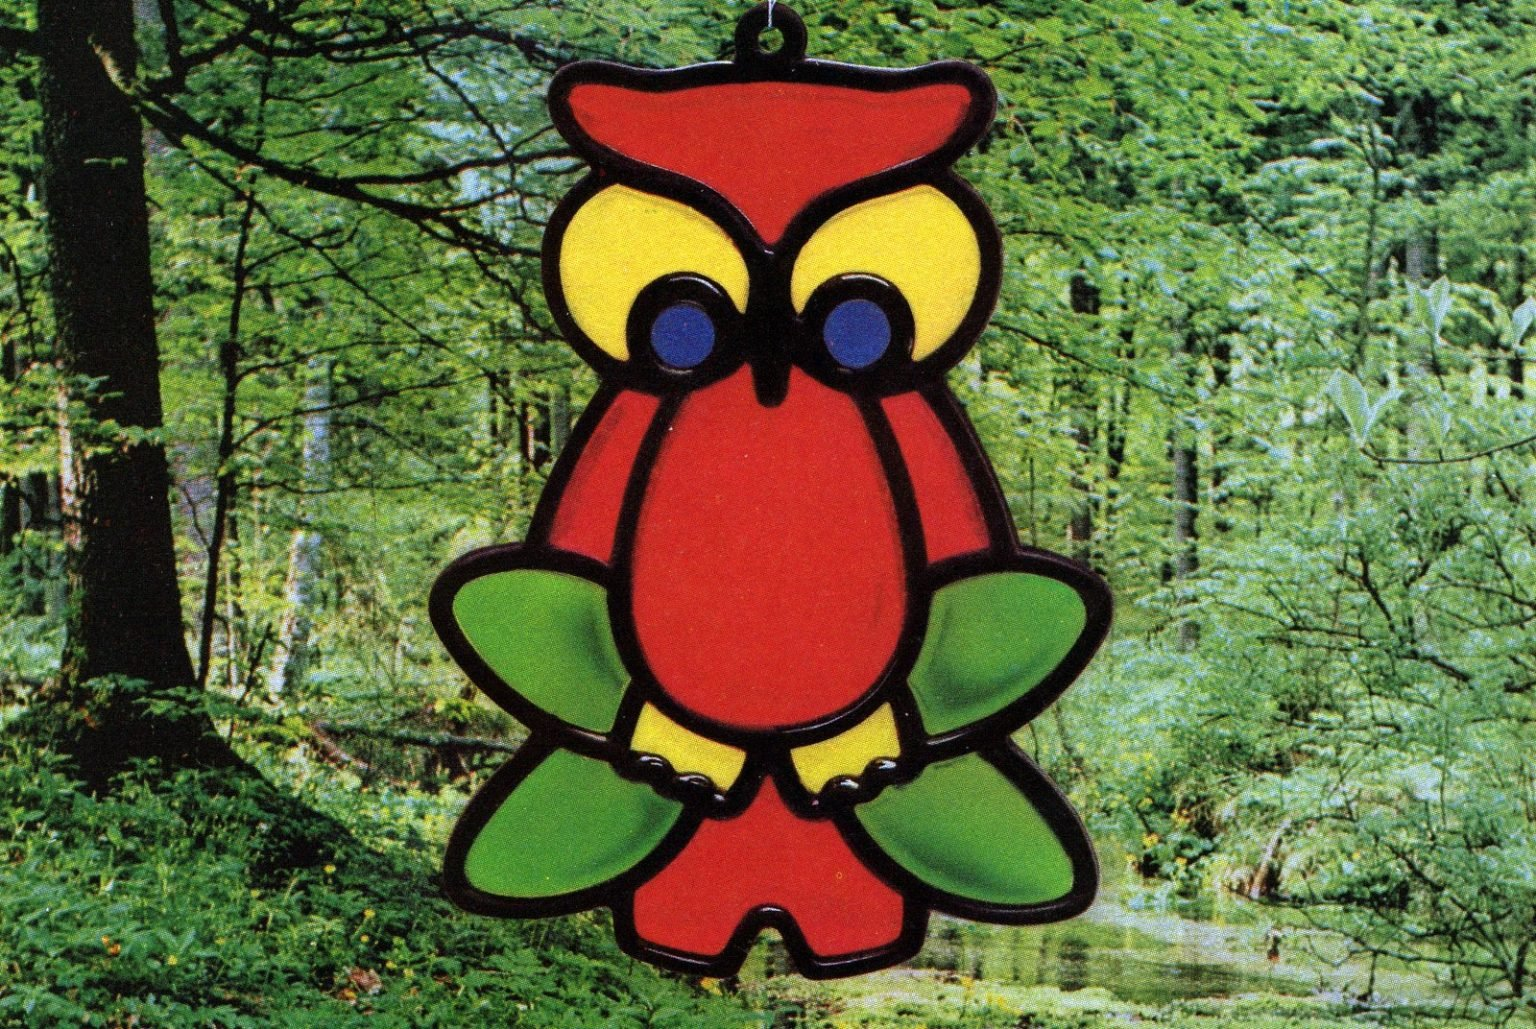 See vintage Mr Culver's Sparklers stained glass air fresheners